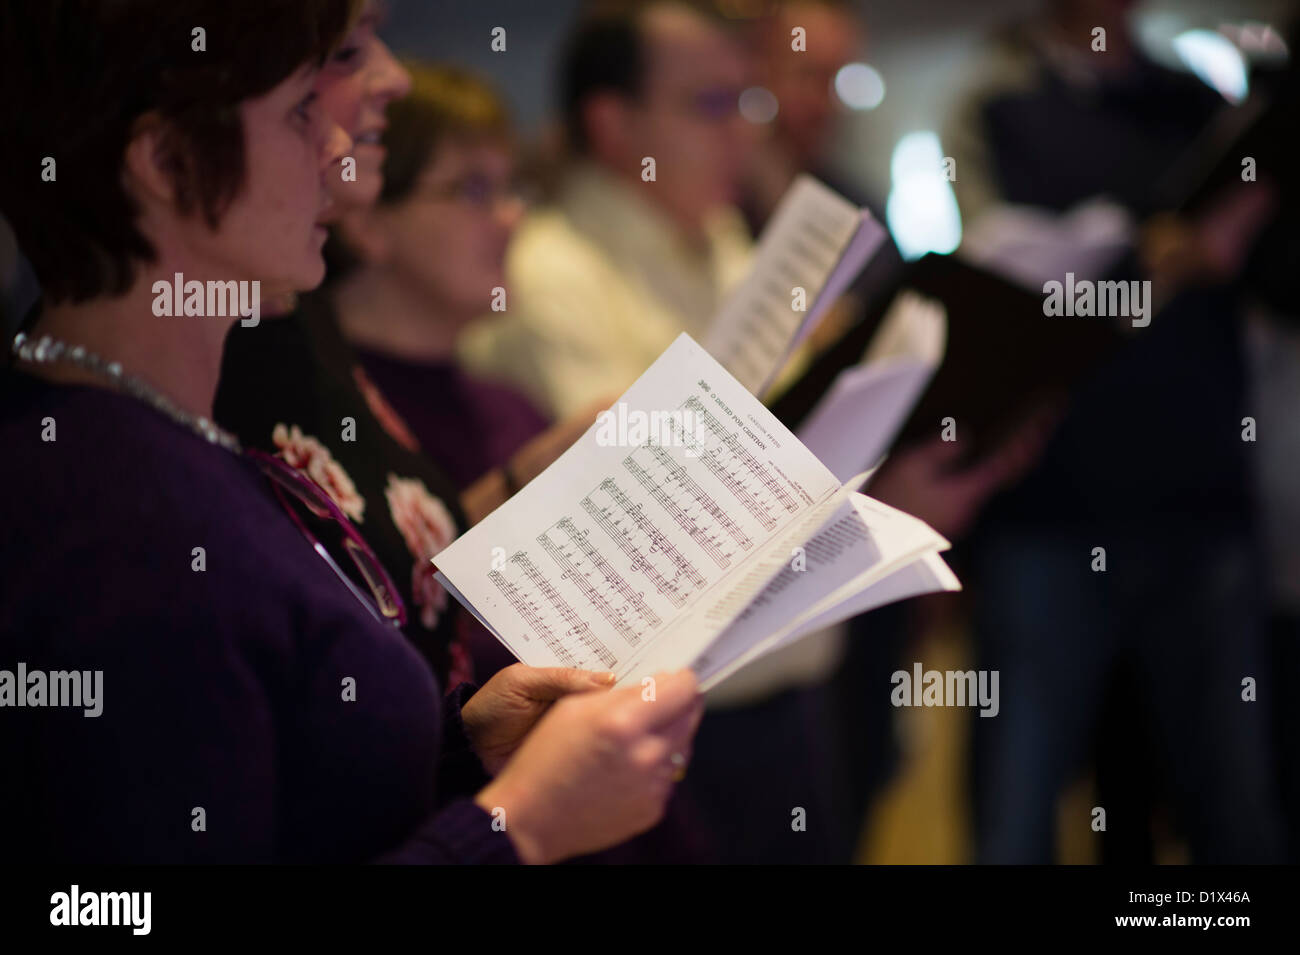 A small amateur choir singing christmas carols in welsh, Aberystwyth, Wales, UK - Stock Image